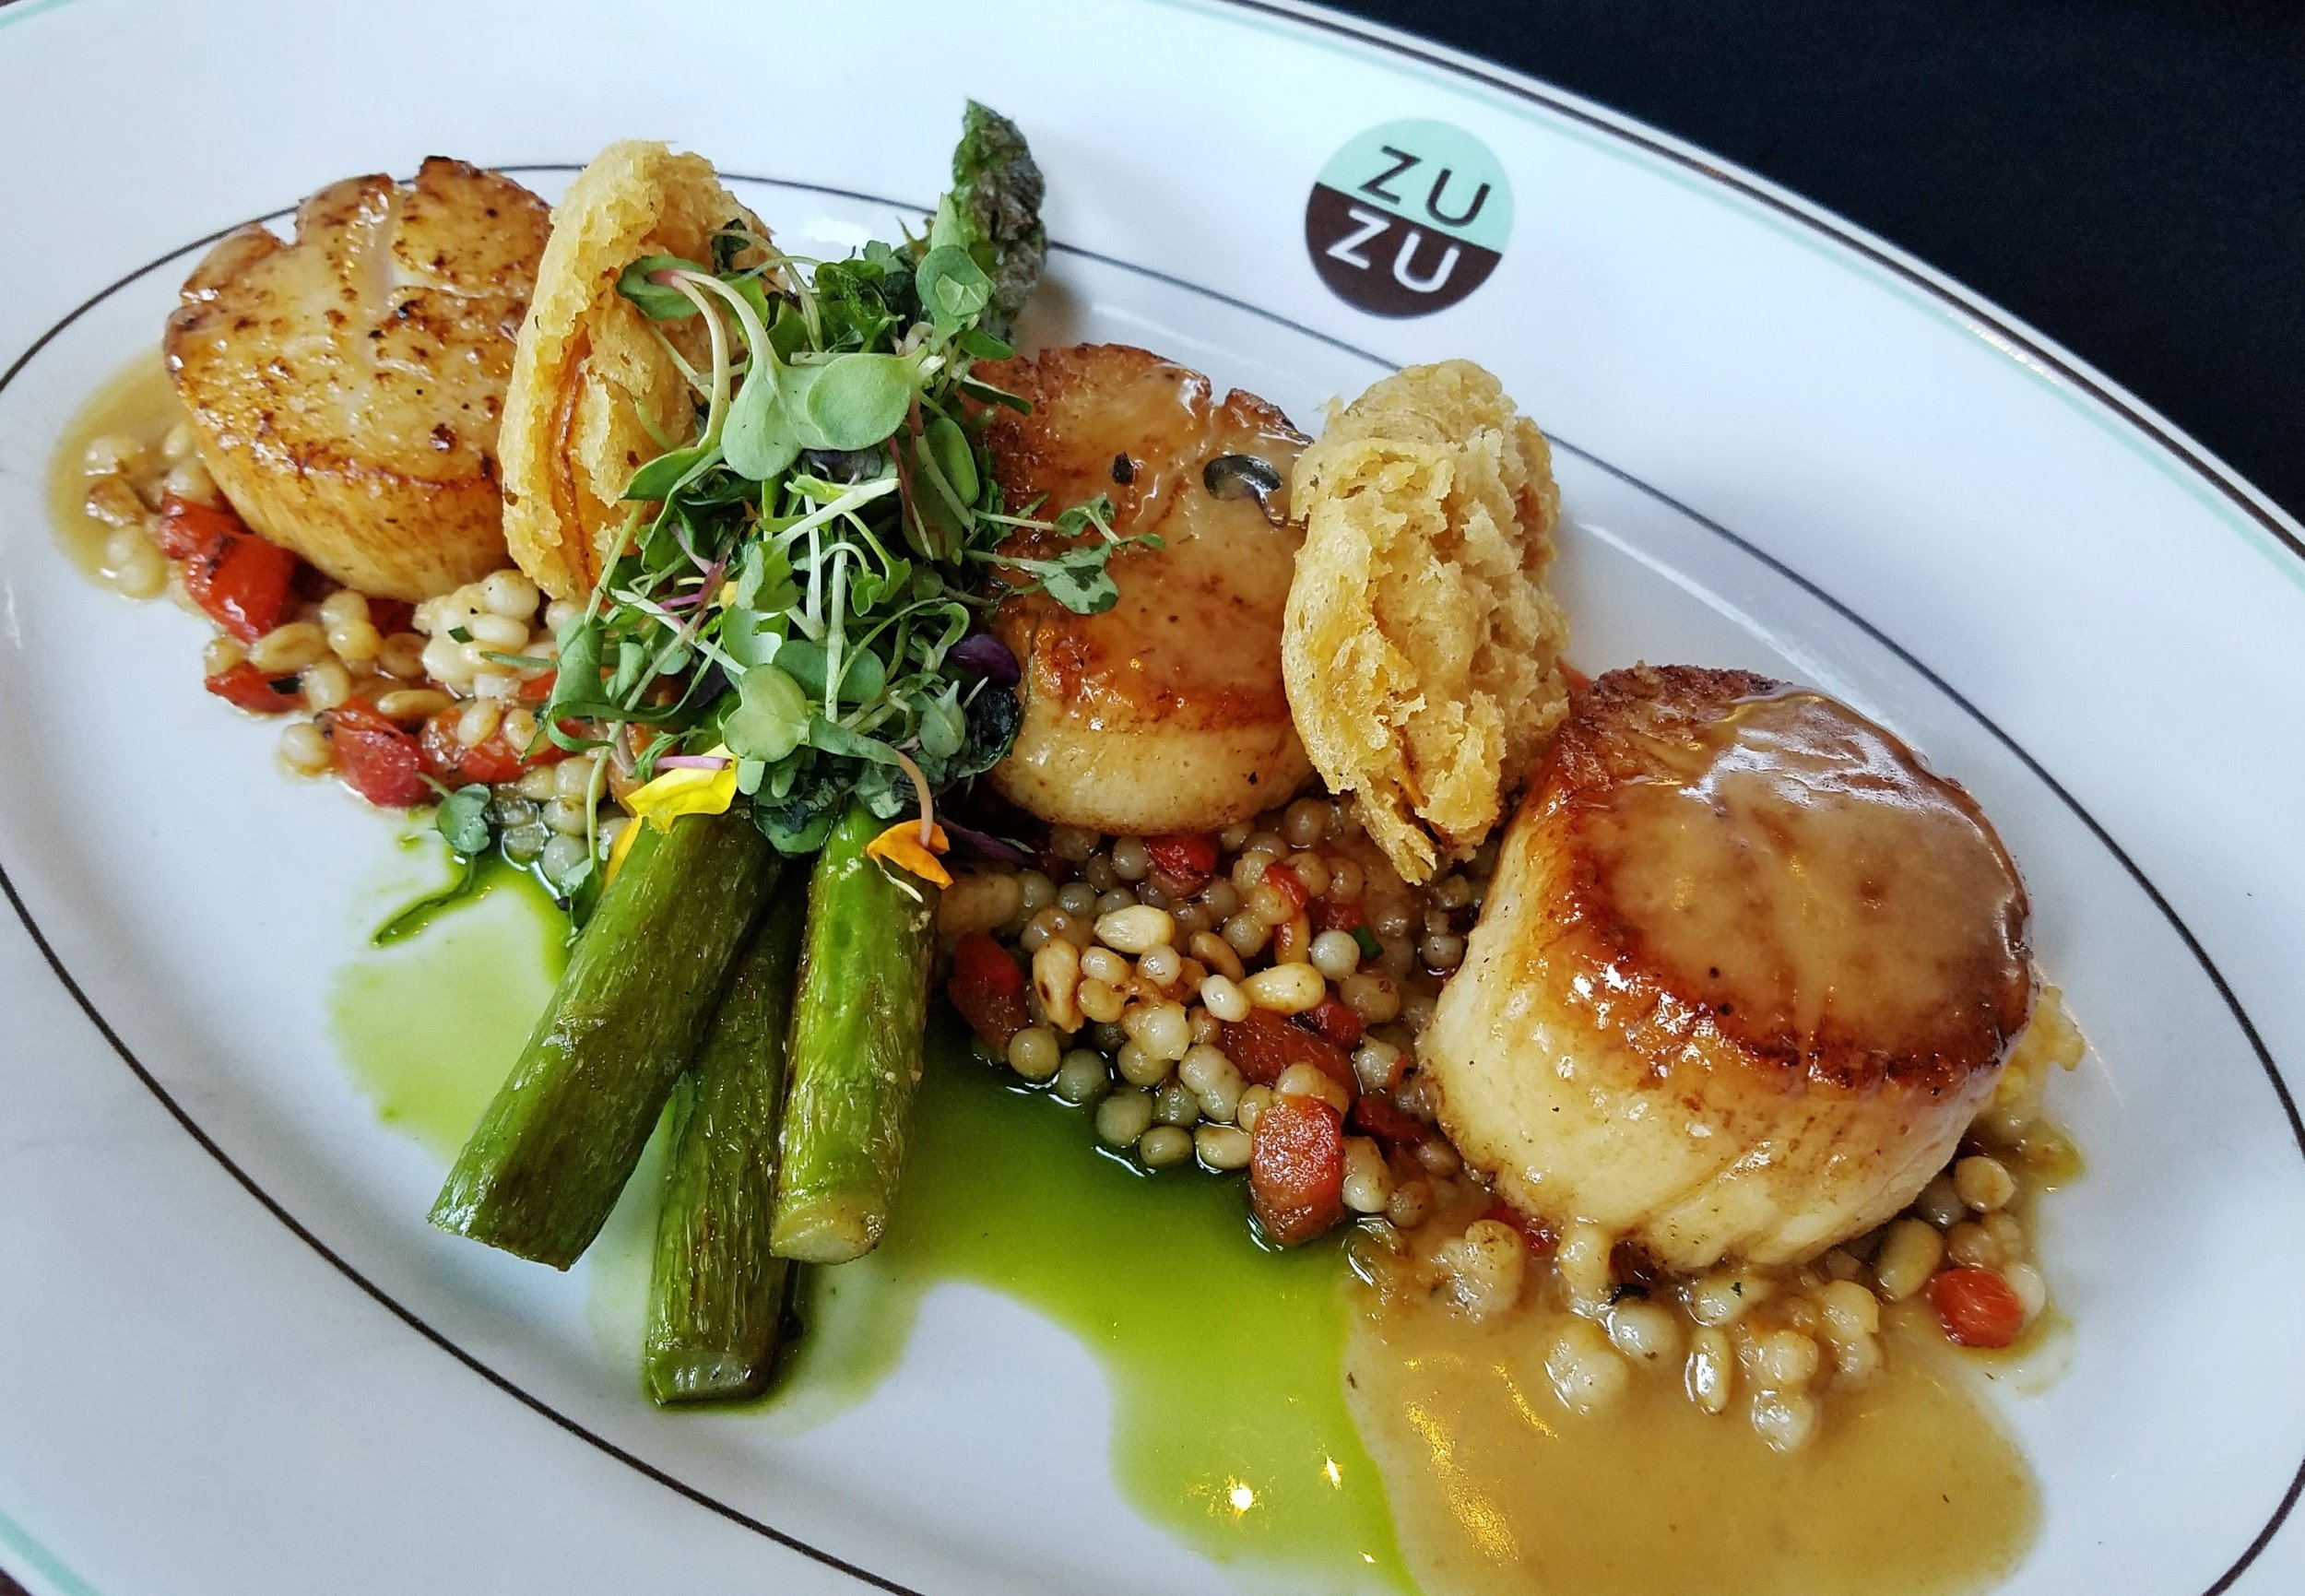 Cafe ZuZu: Chef LaCasce's Hokkaido scallops with shellfish butter, asparagus, fried meyer lemon, and toasted pearl couscous